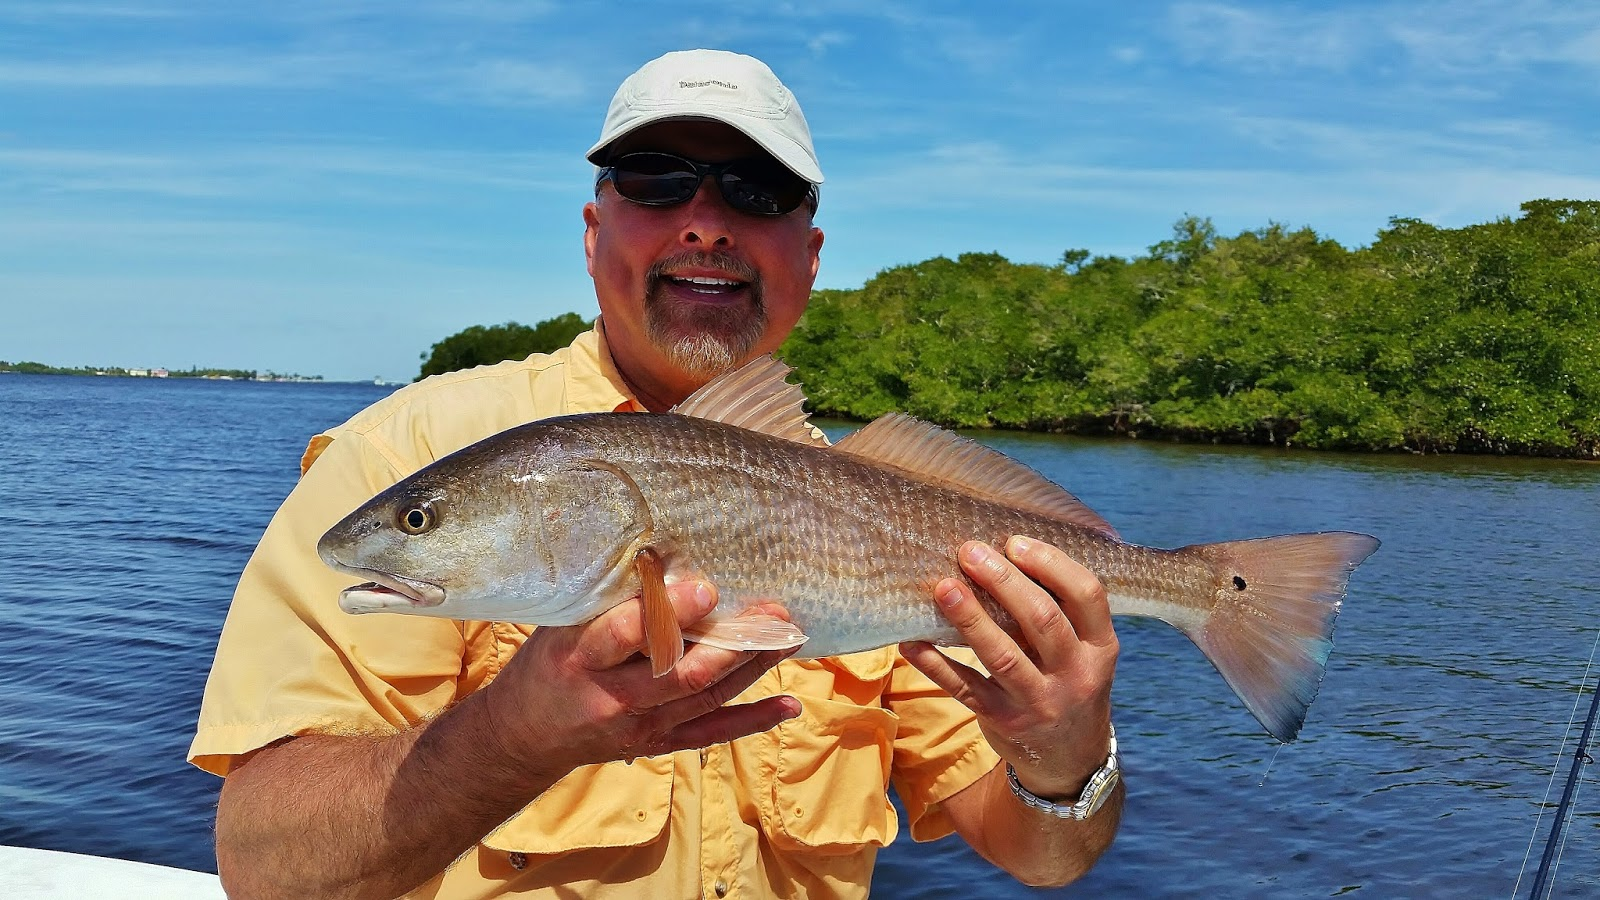 The pine island angler pine island in march for Pine island fishing charters